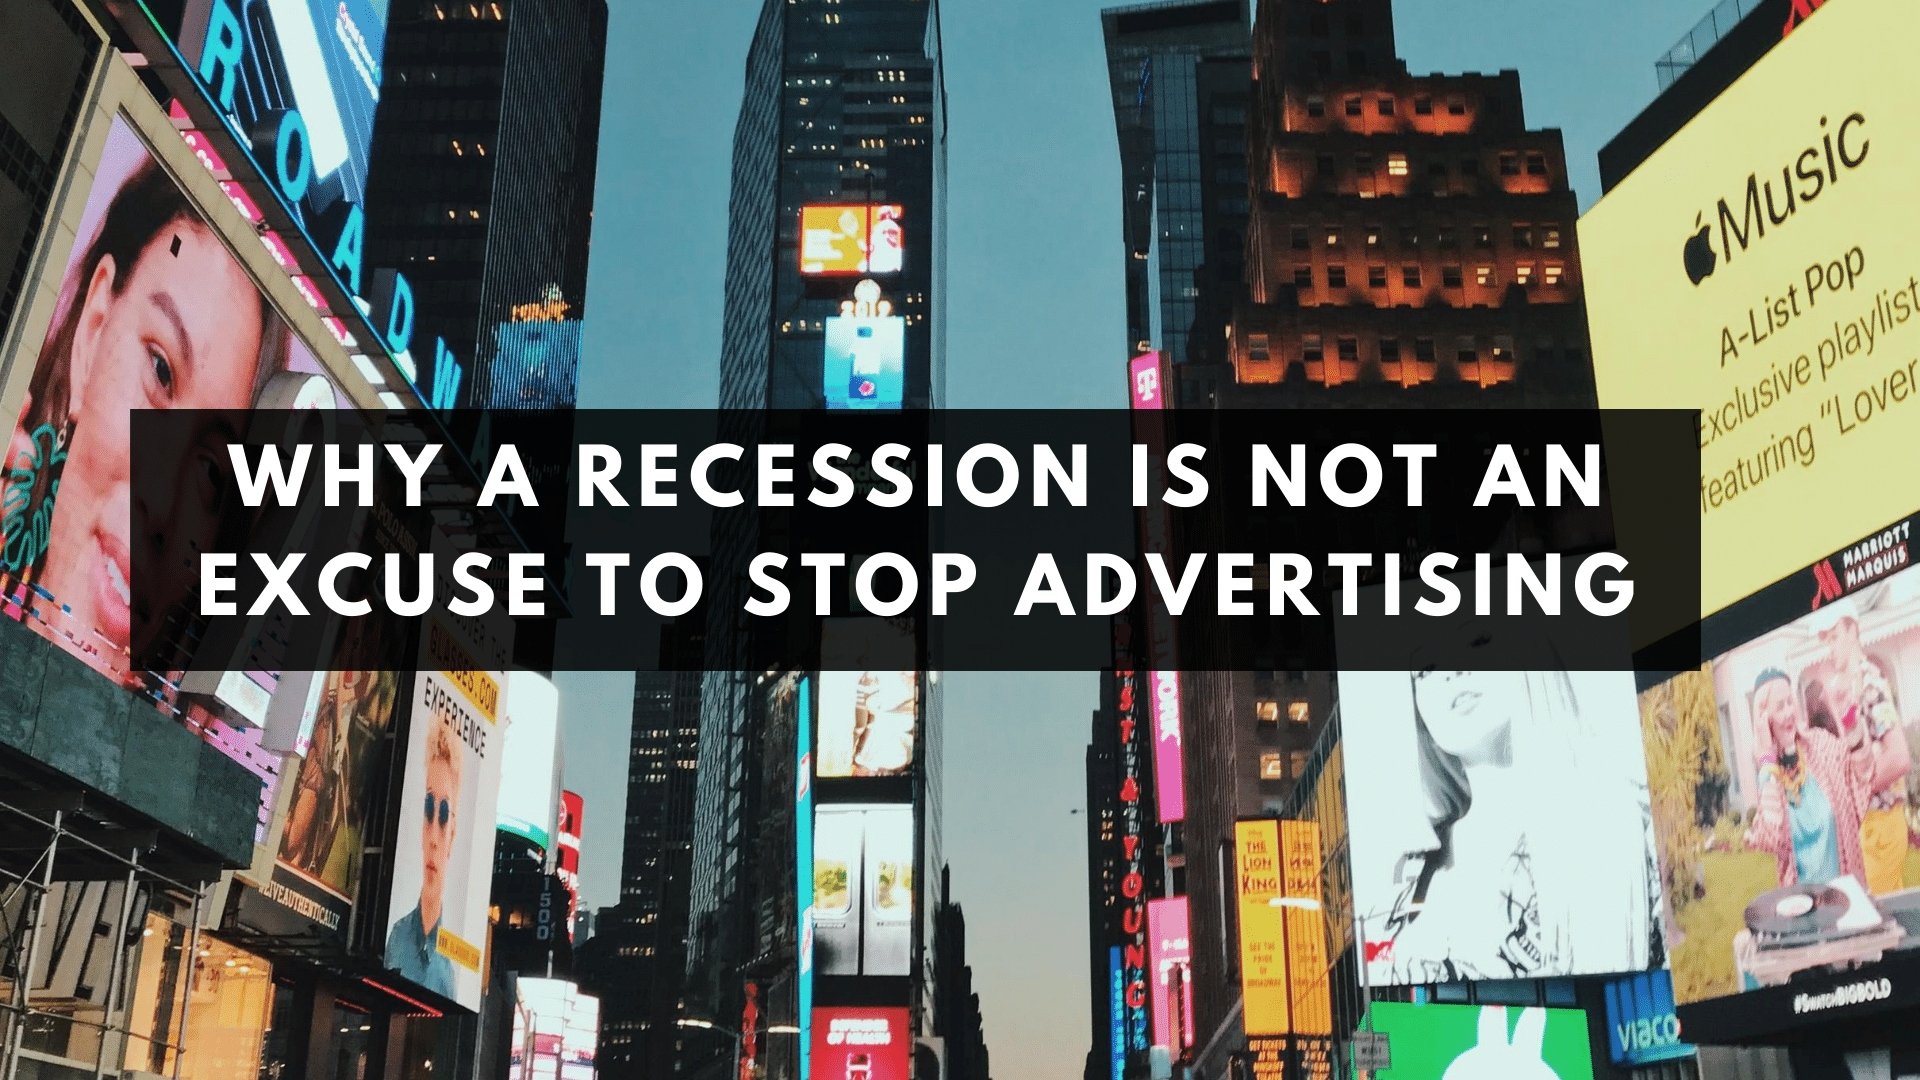 Why a Recession Is Not an Excuse to Stop Advertising